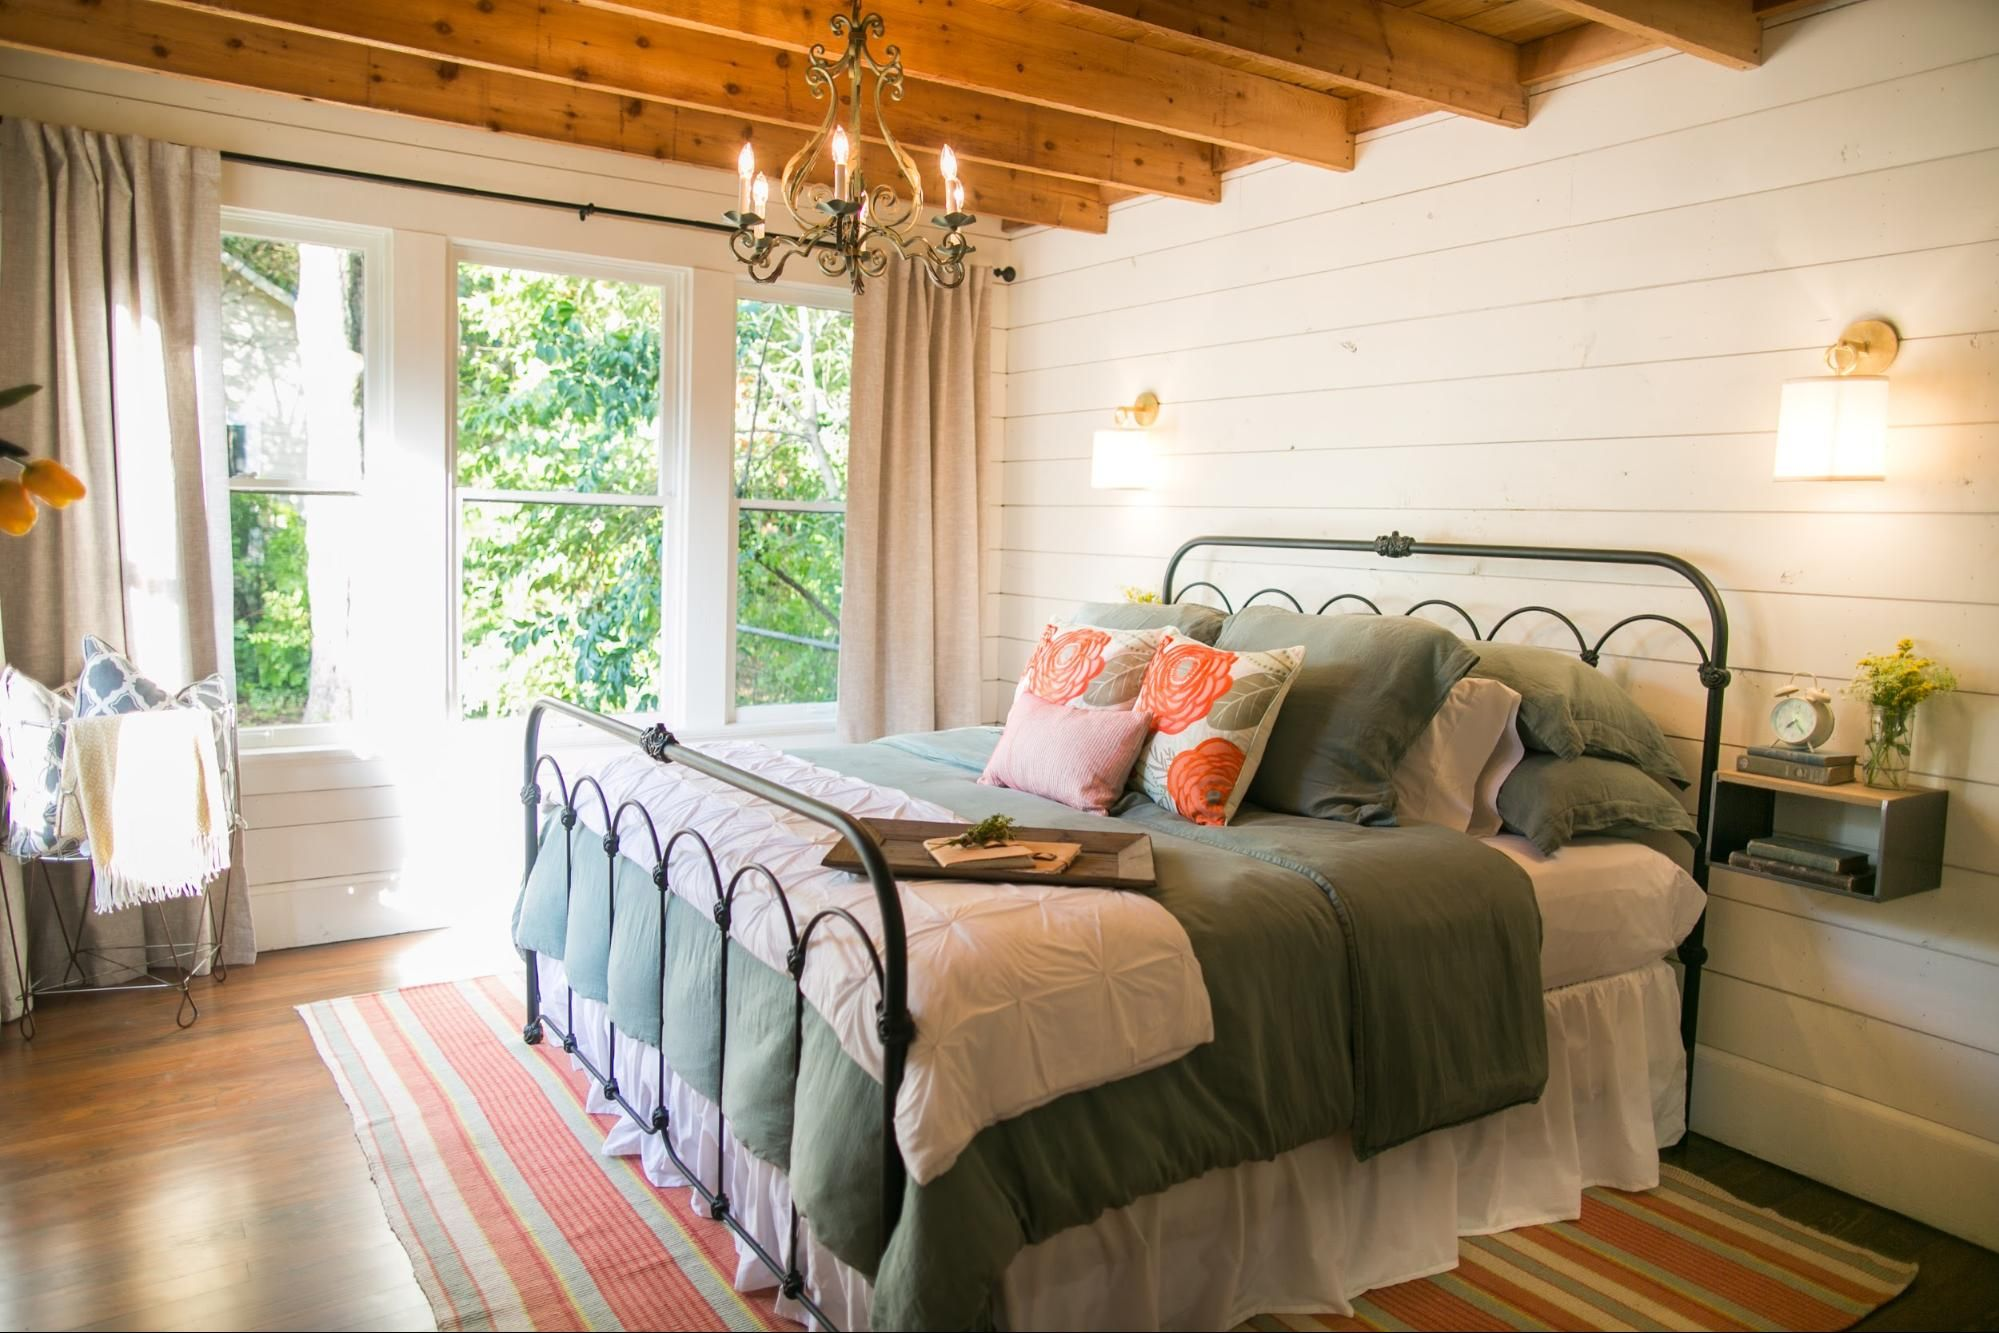 bedroom from Fixer Upper home decor Pinterest